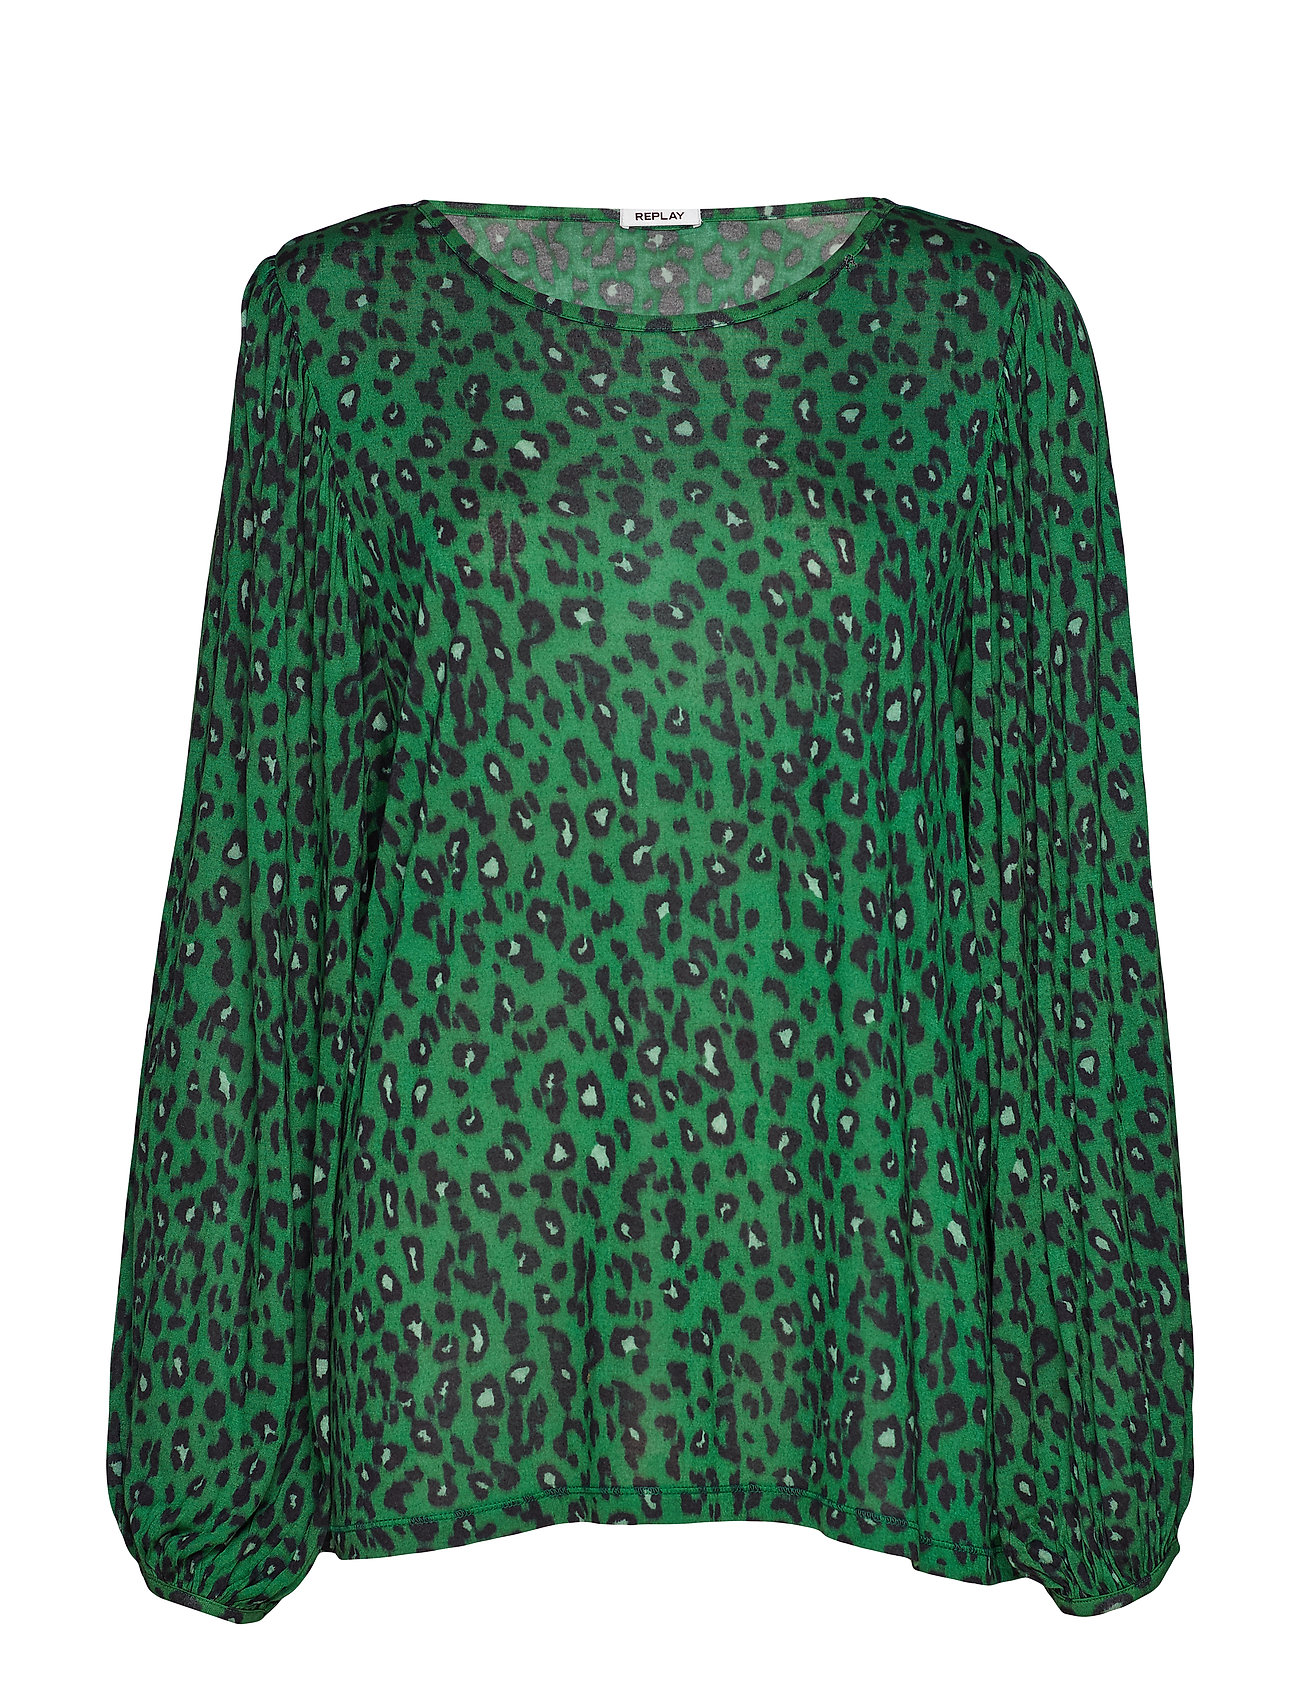 Replay Long-sleeved t-shirt - GREEN/BLACK ANIMALIER